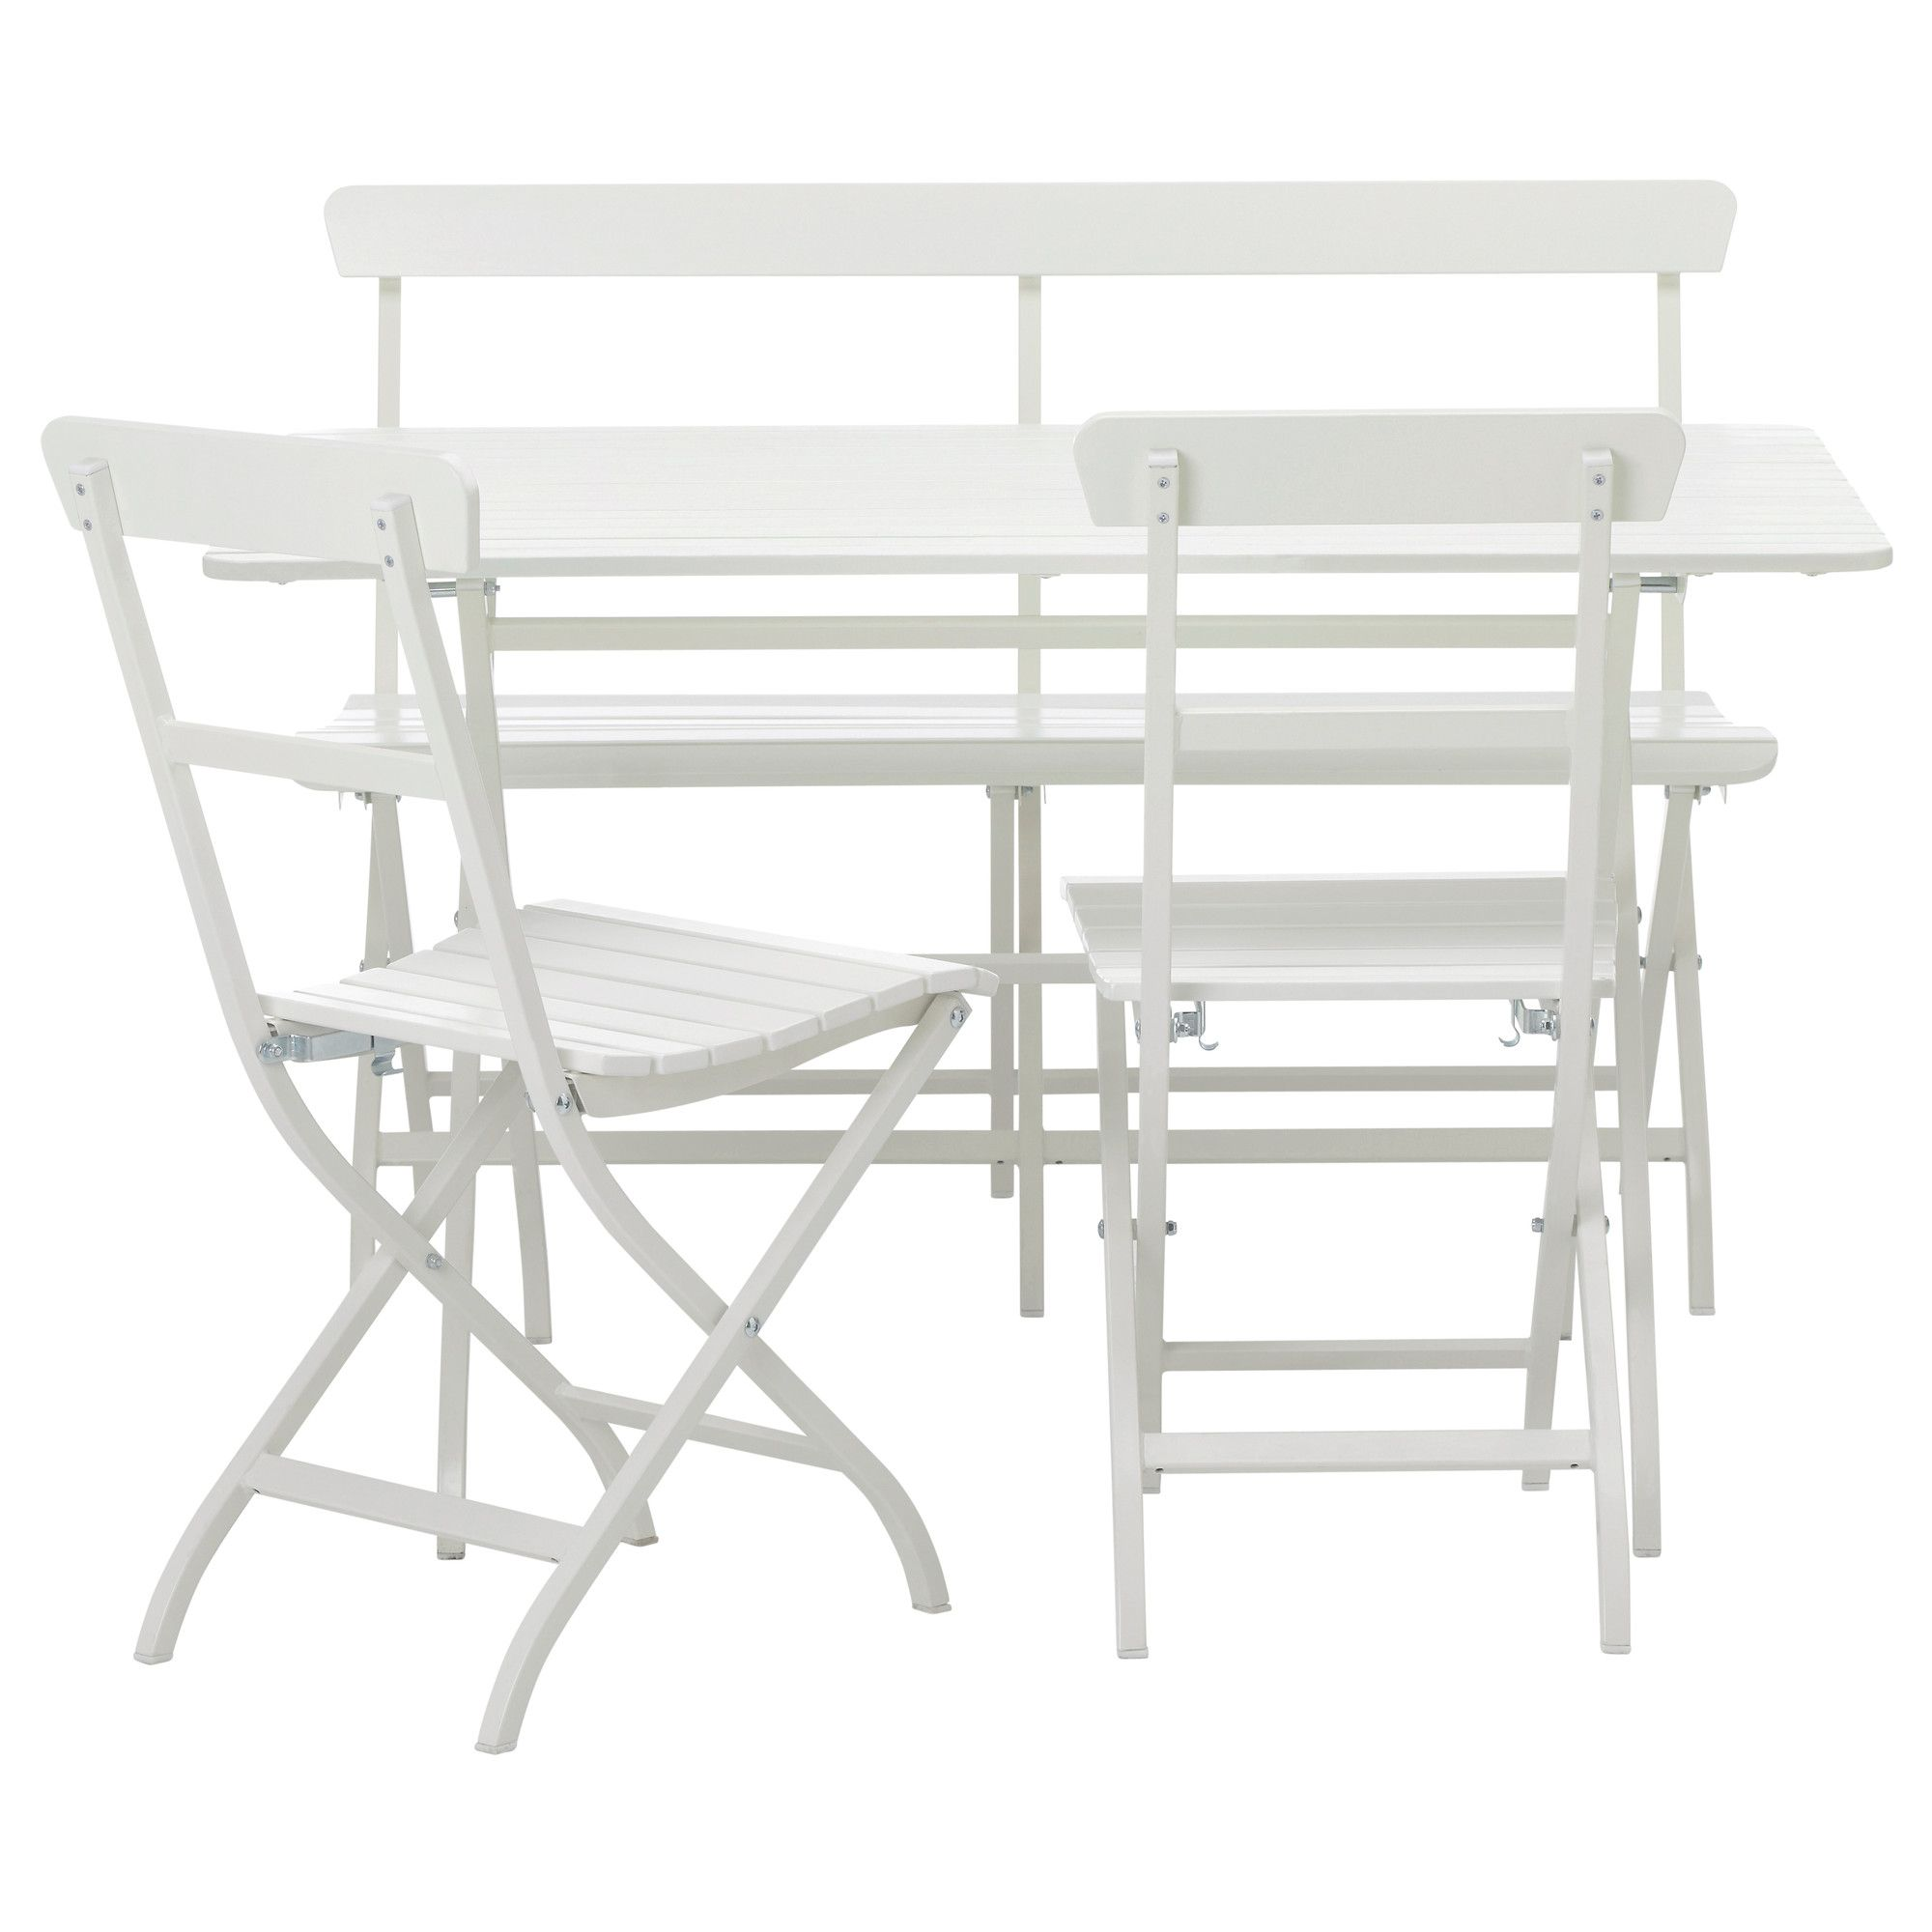 Quaint outdoor dining set in classic white